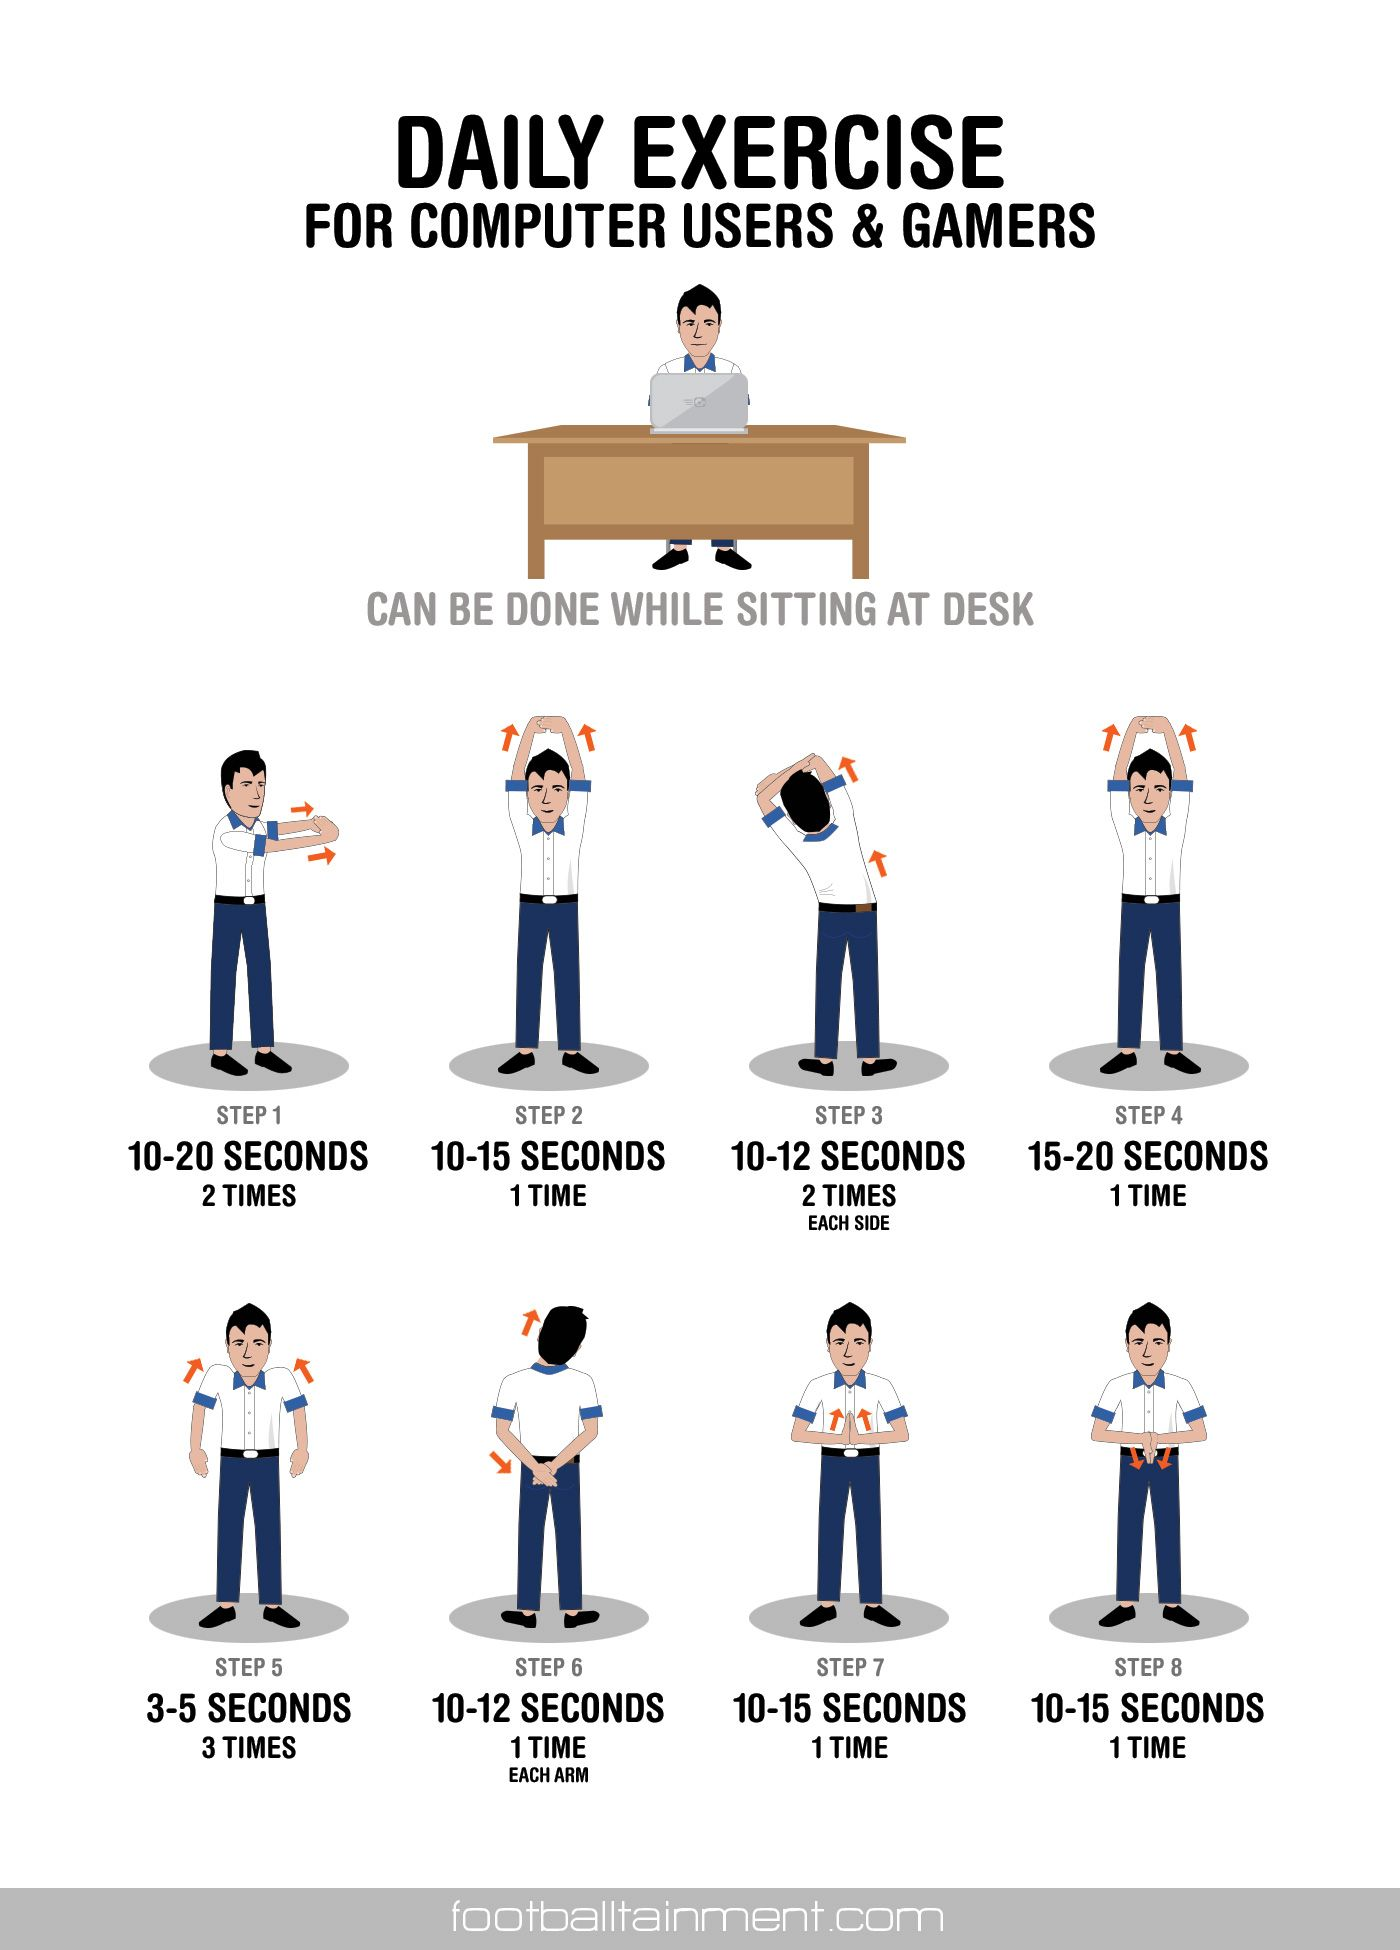 work desk daily exercise for gamers and computer which can